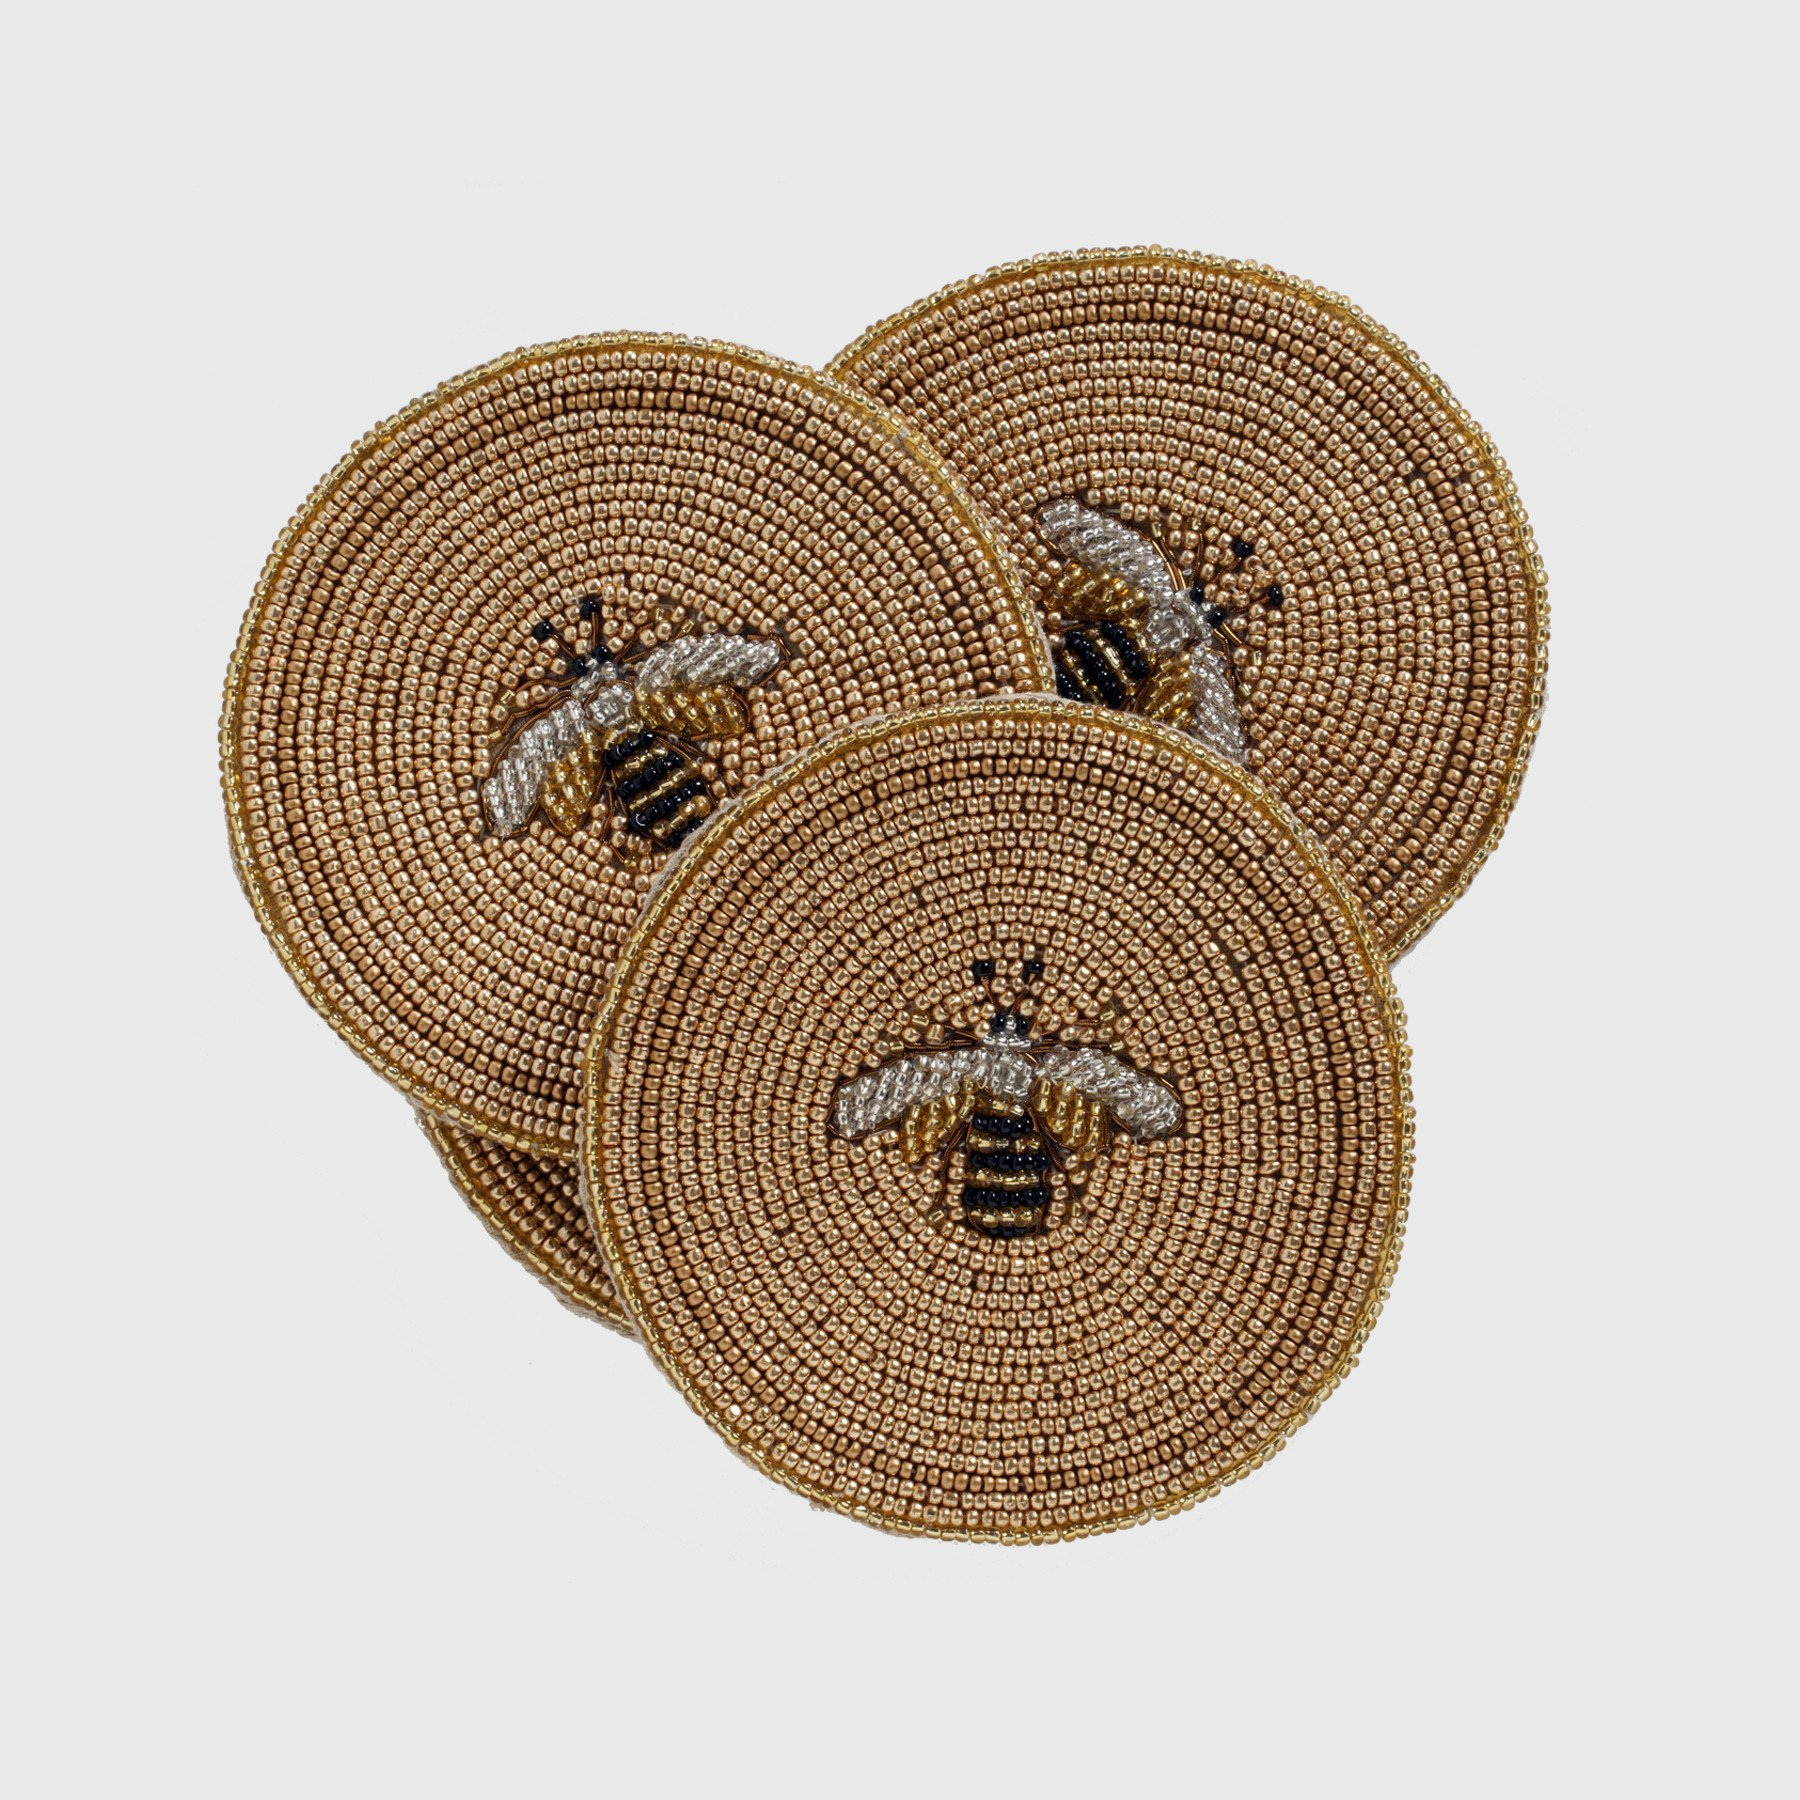 Joanna Buchanan Stripey Bee Coasters, Set of 4